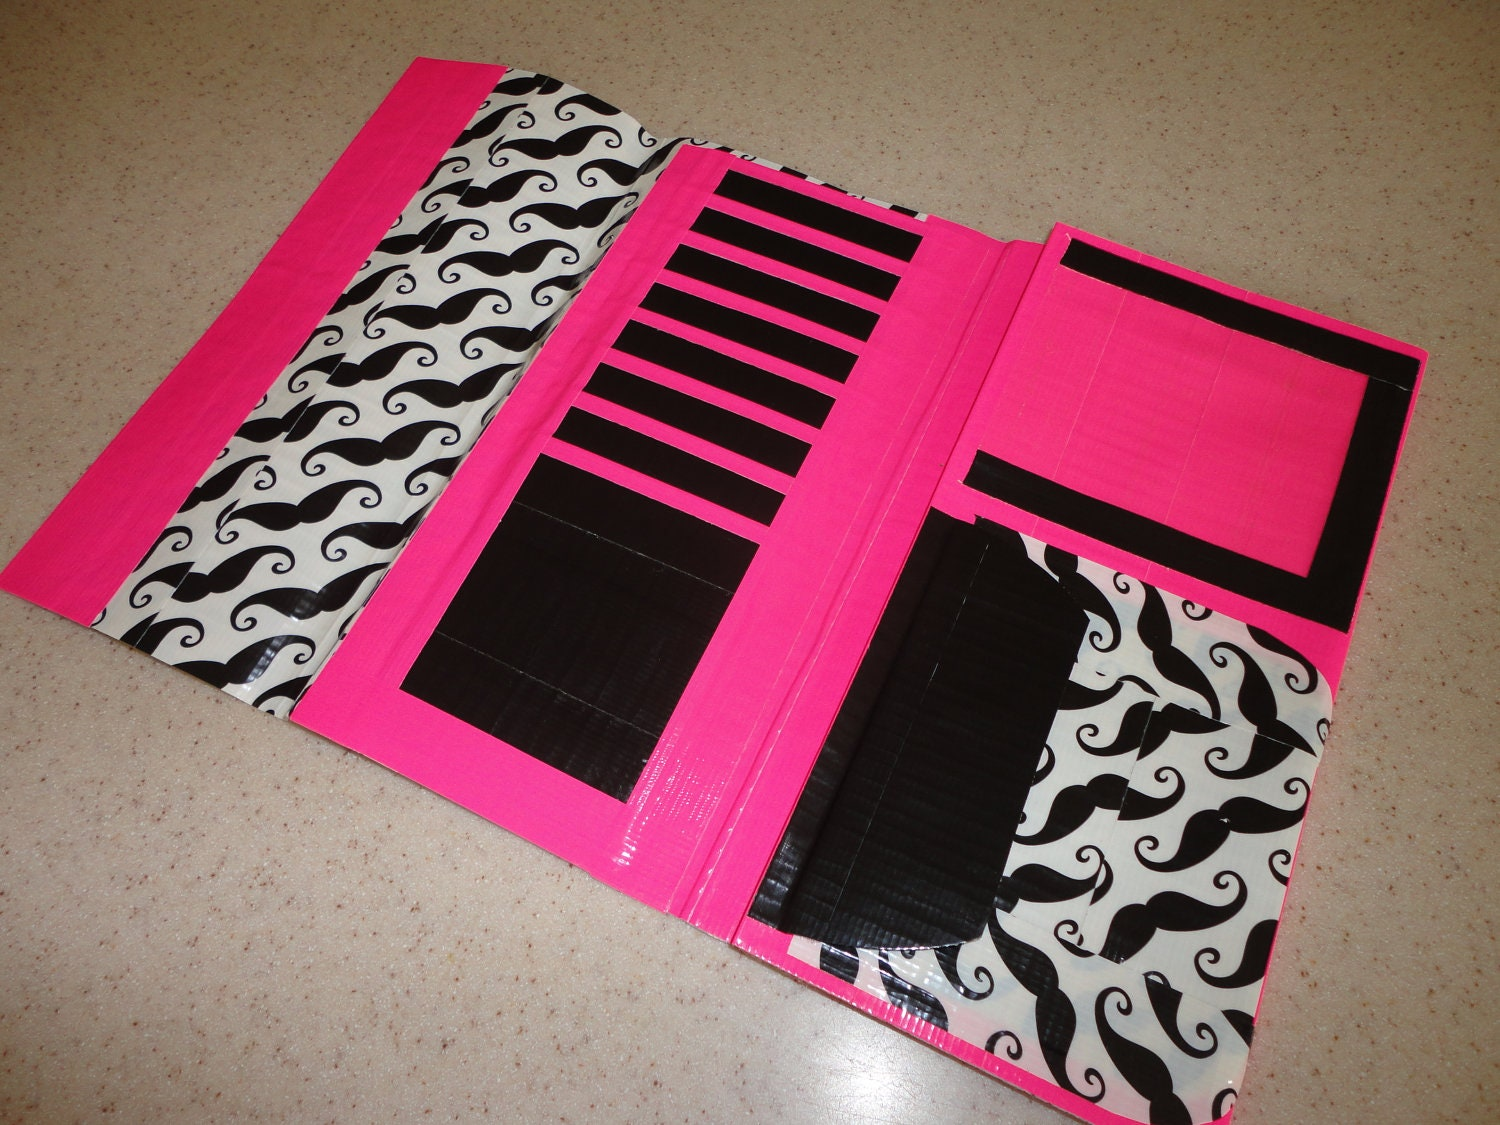 pics for gt duct tape womens wallet designs